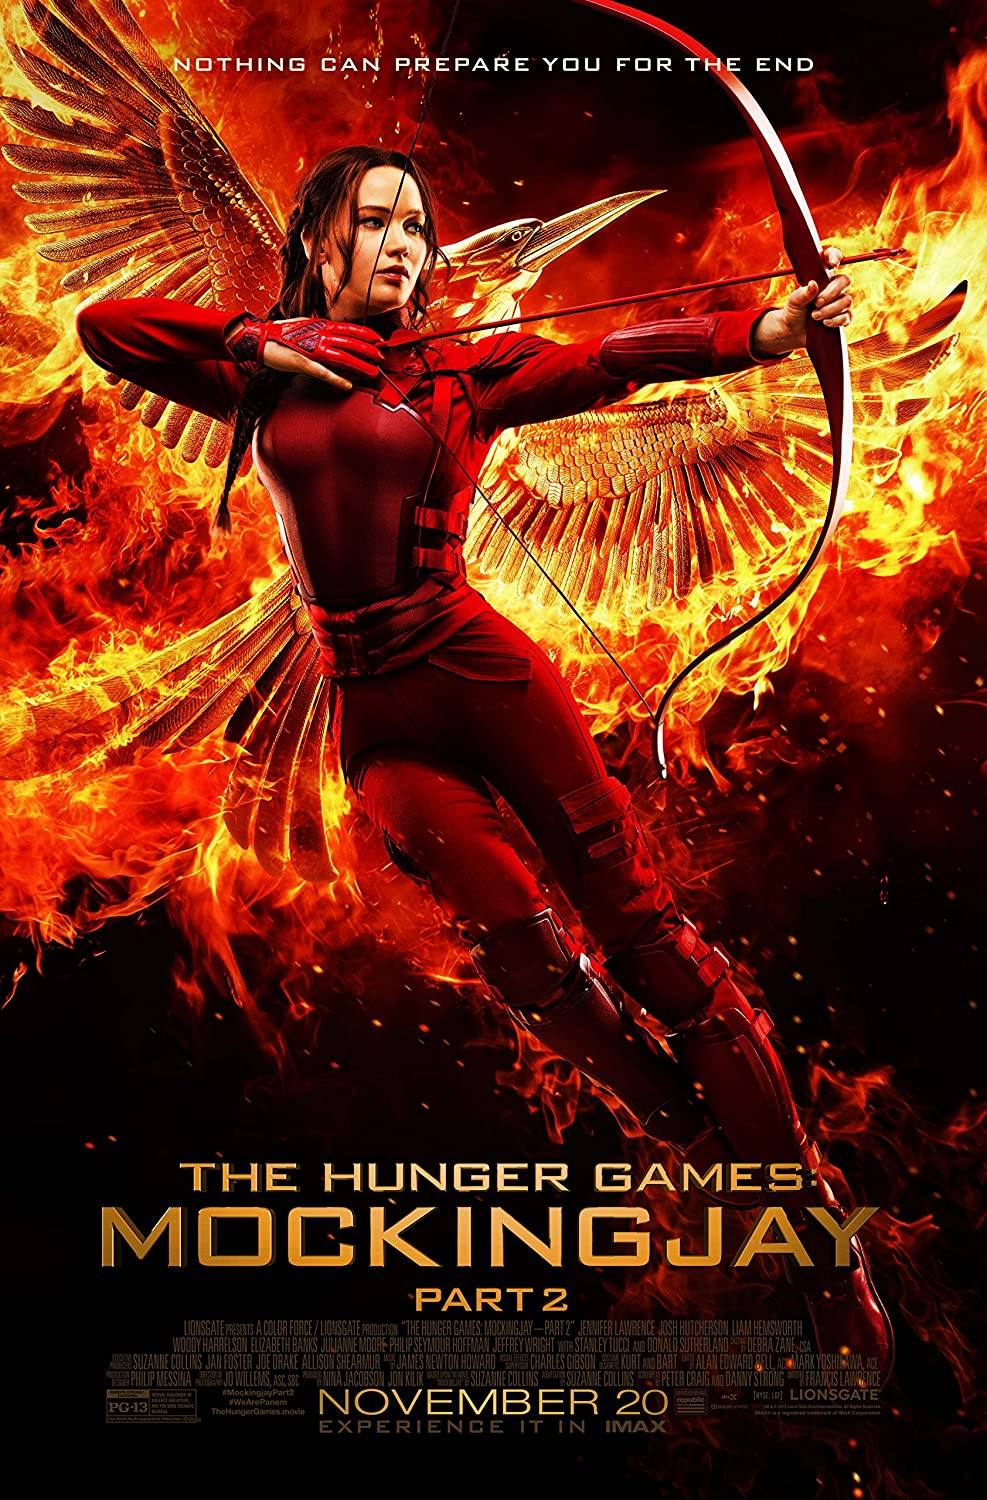 "KATNISS - The Hunger Games: MockingJay Part 2 (2015) Movie Poster, 24 x 36"" Inches - Theater Quality (THICK 8 Mil) - Jennifer Lawrence, Josh Hutcherson, Liam Hemsworth"